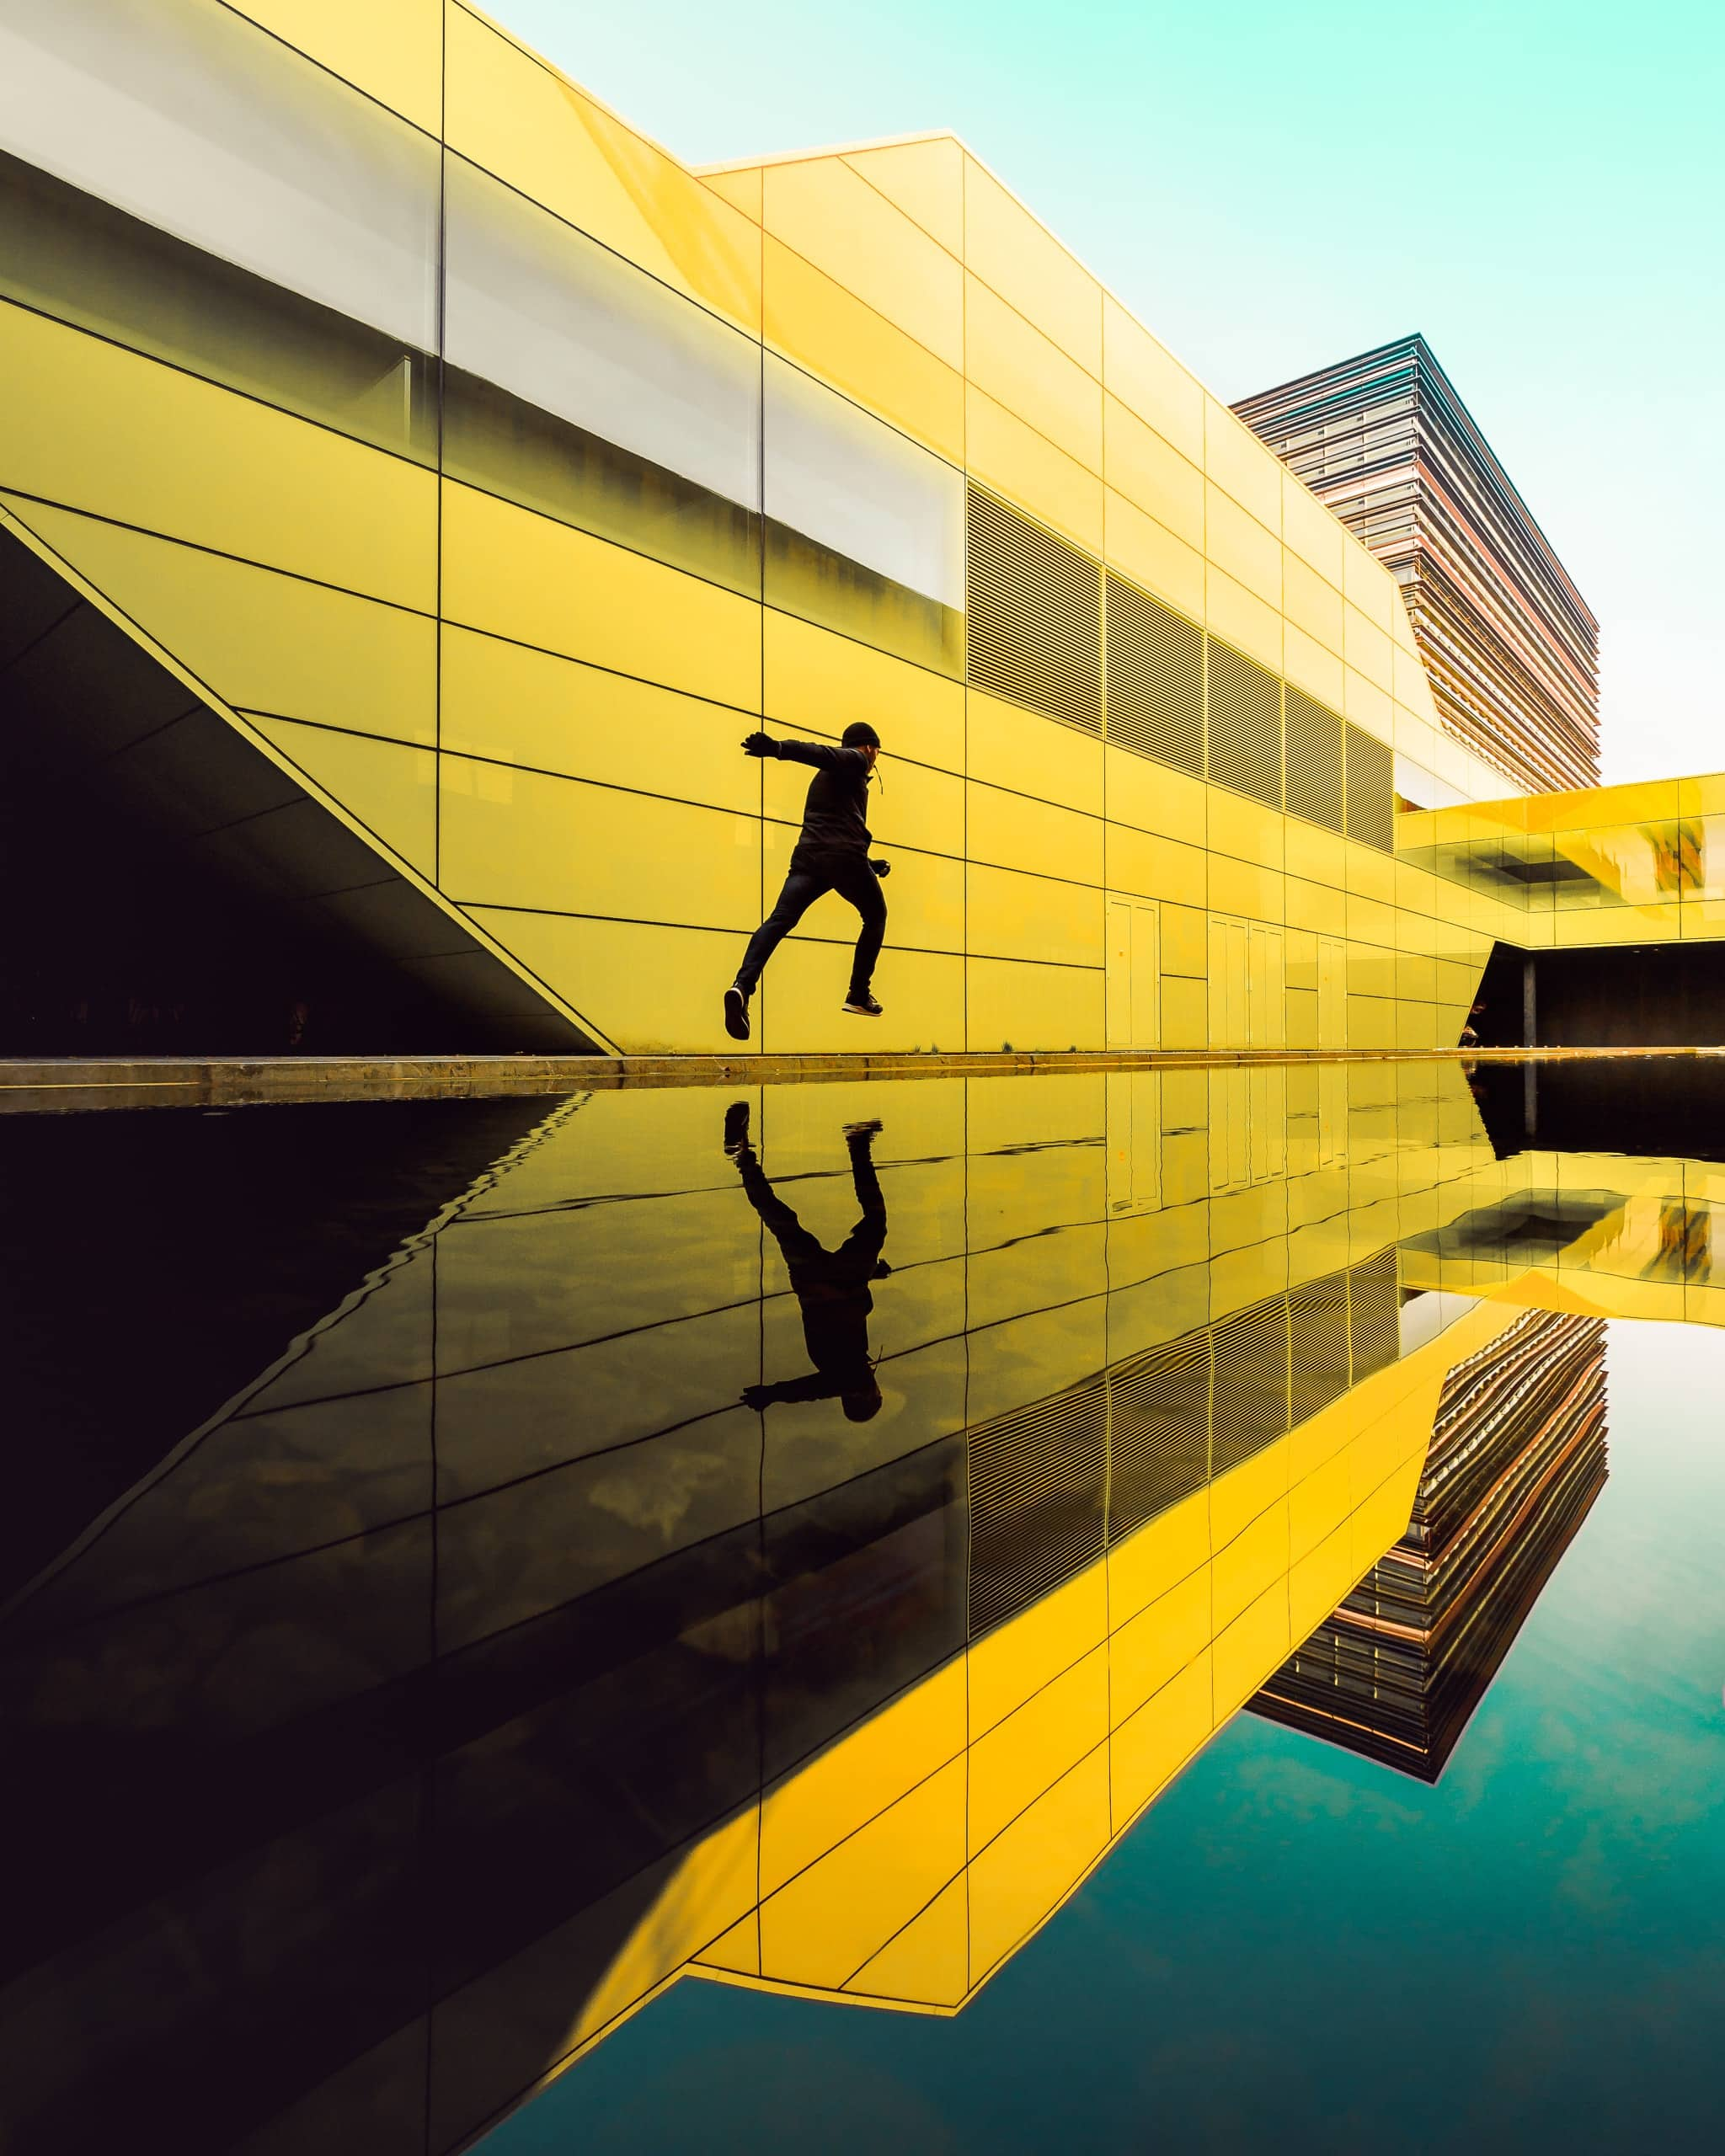 Reginar Photography running through Utrecht Science Park architecture with reflection of the buildings with yellow and green color palette